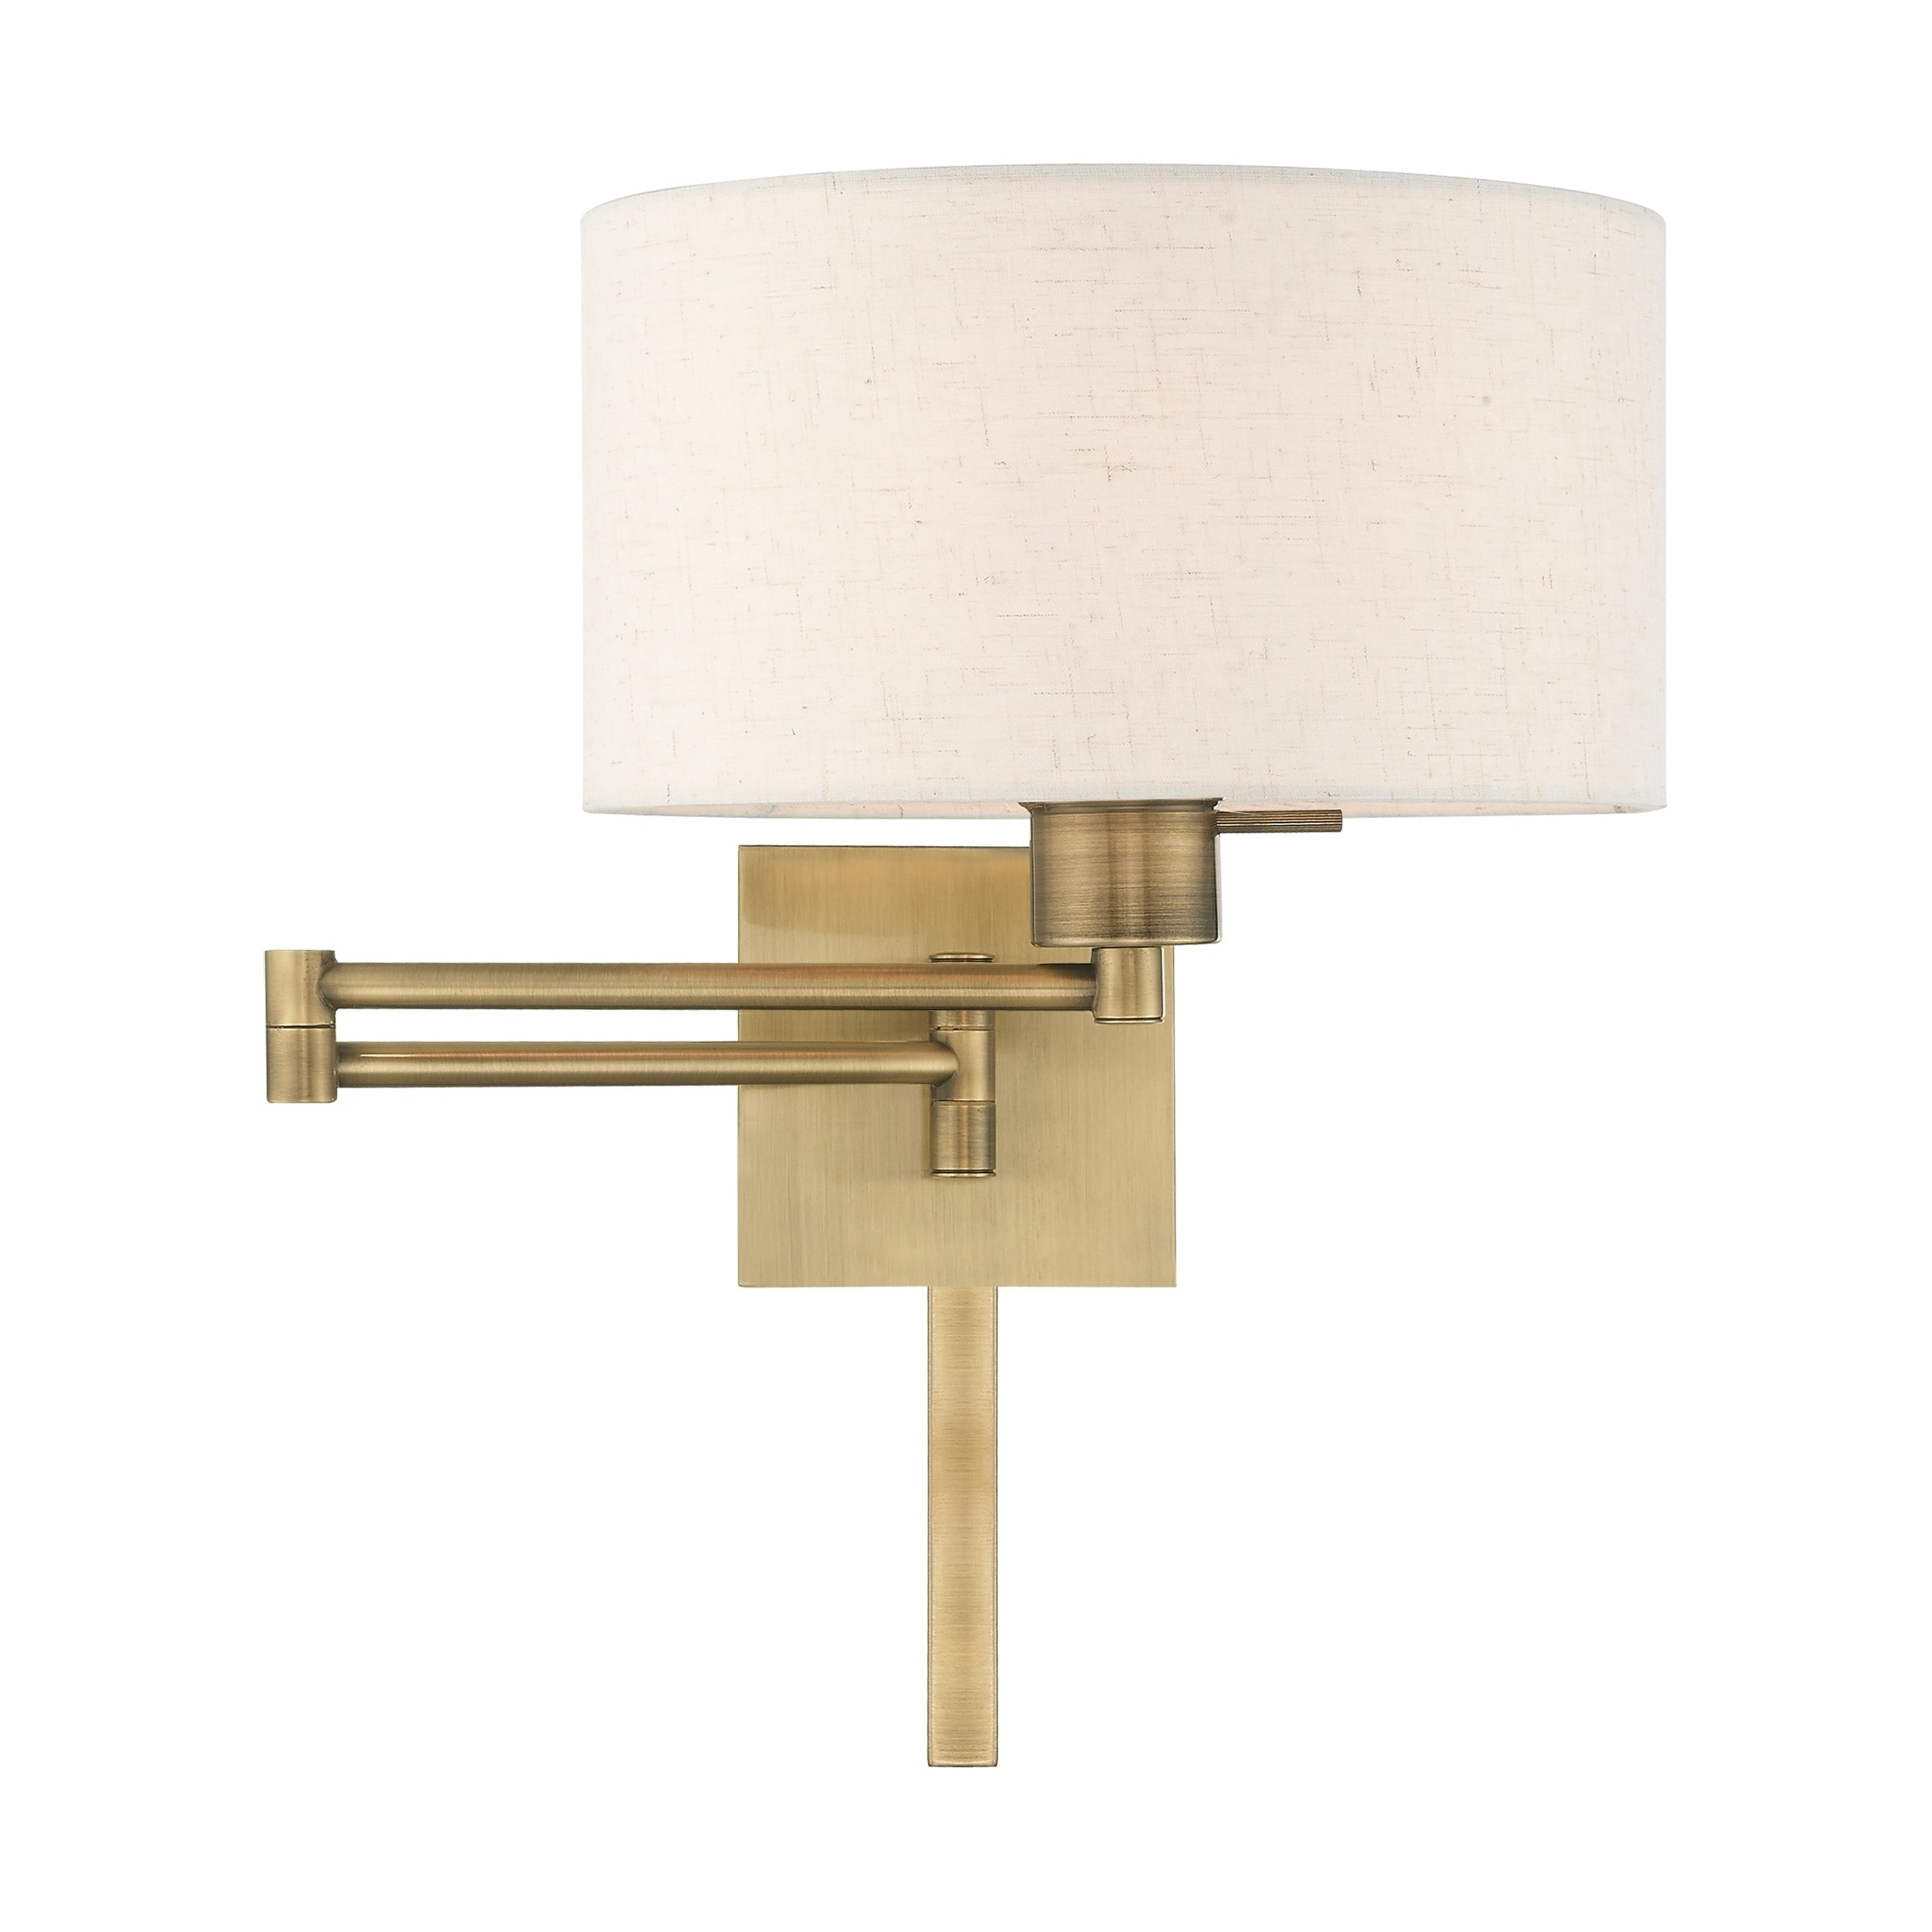 Swing Wall Lamp Details About Livex Lighting 1 Light Oatmeal Drum Shade Swing Arm Wall Lamp 11 W X 11 H X